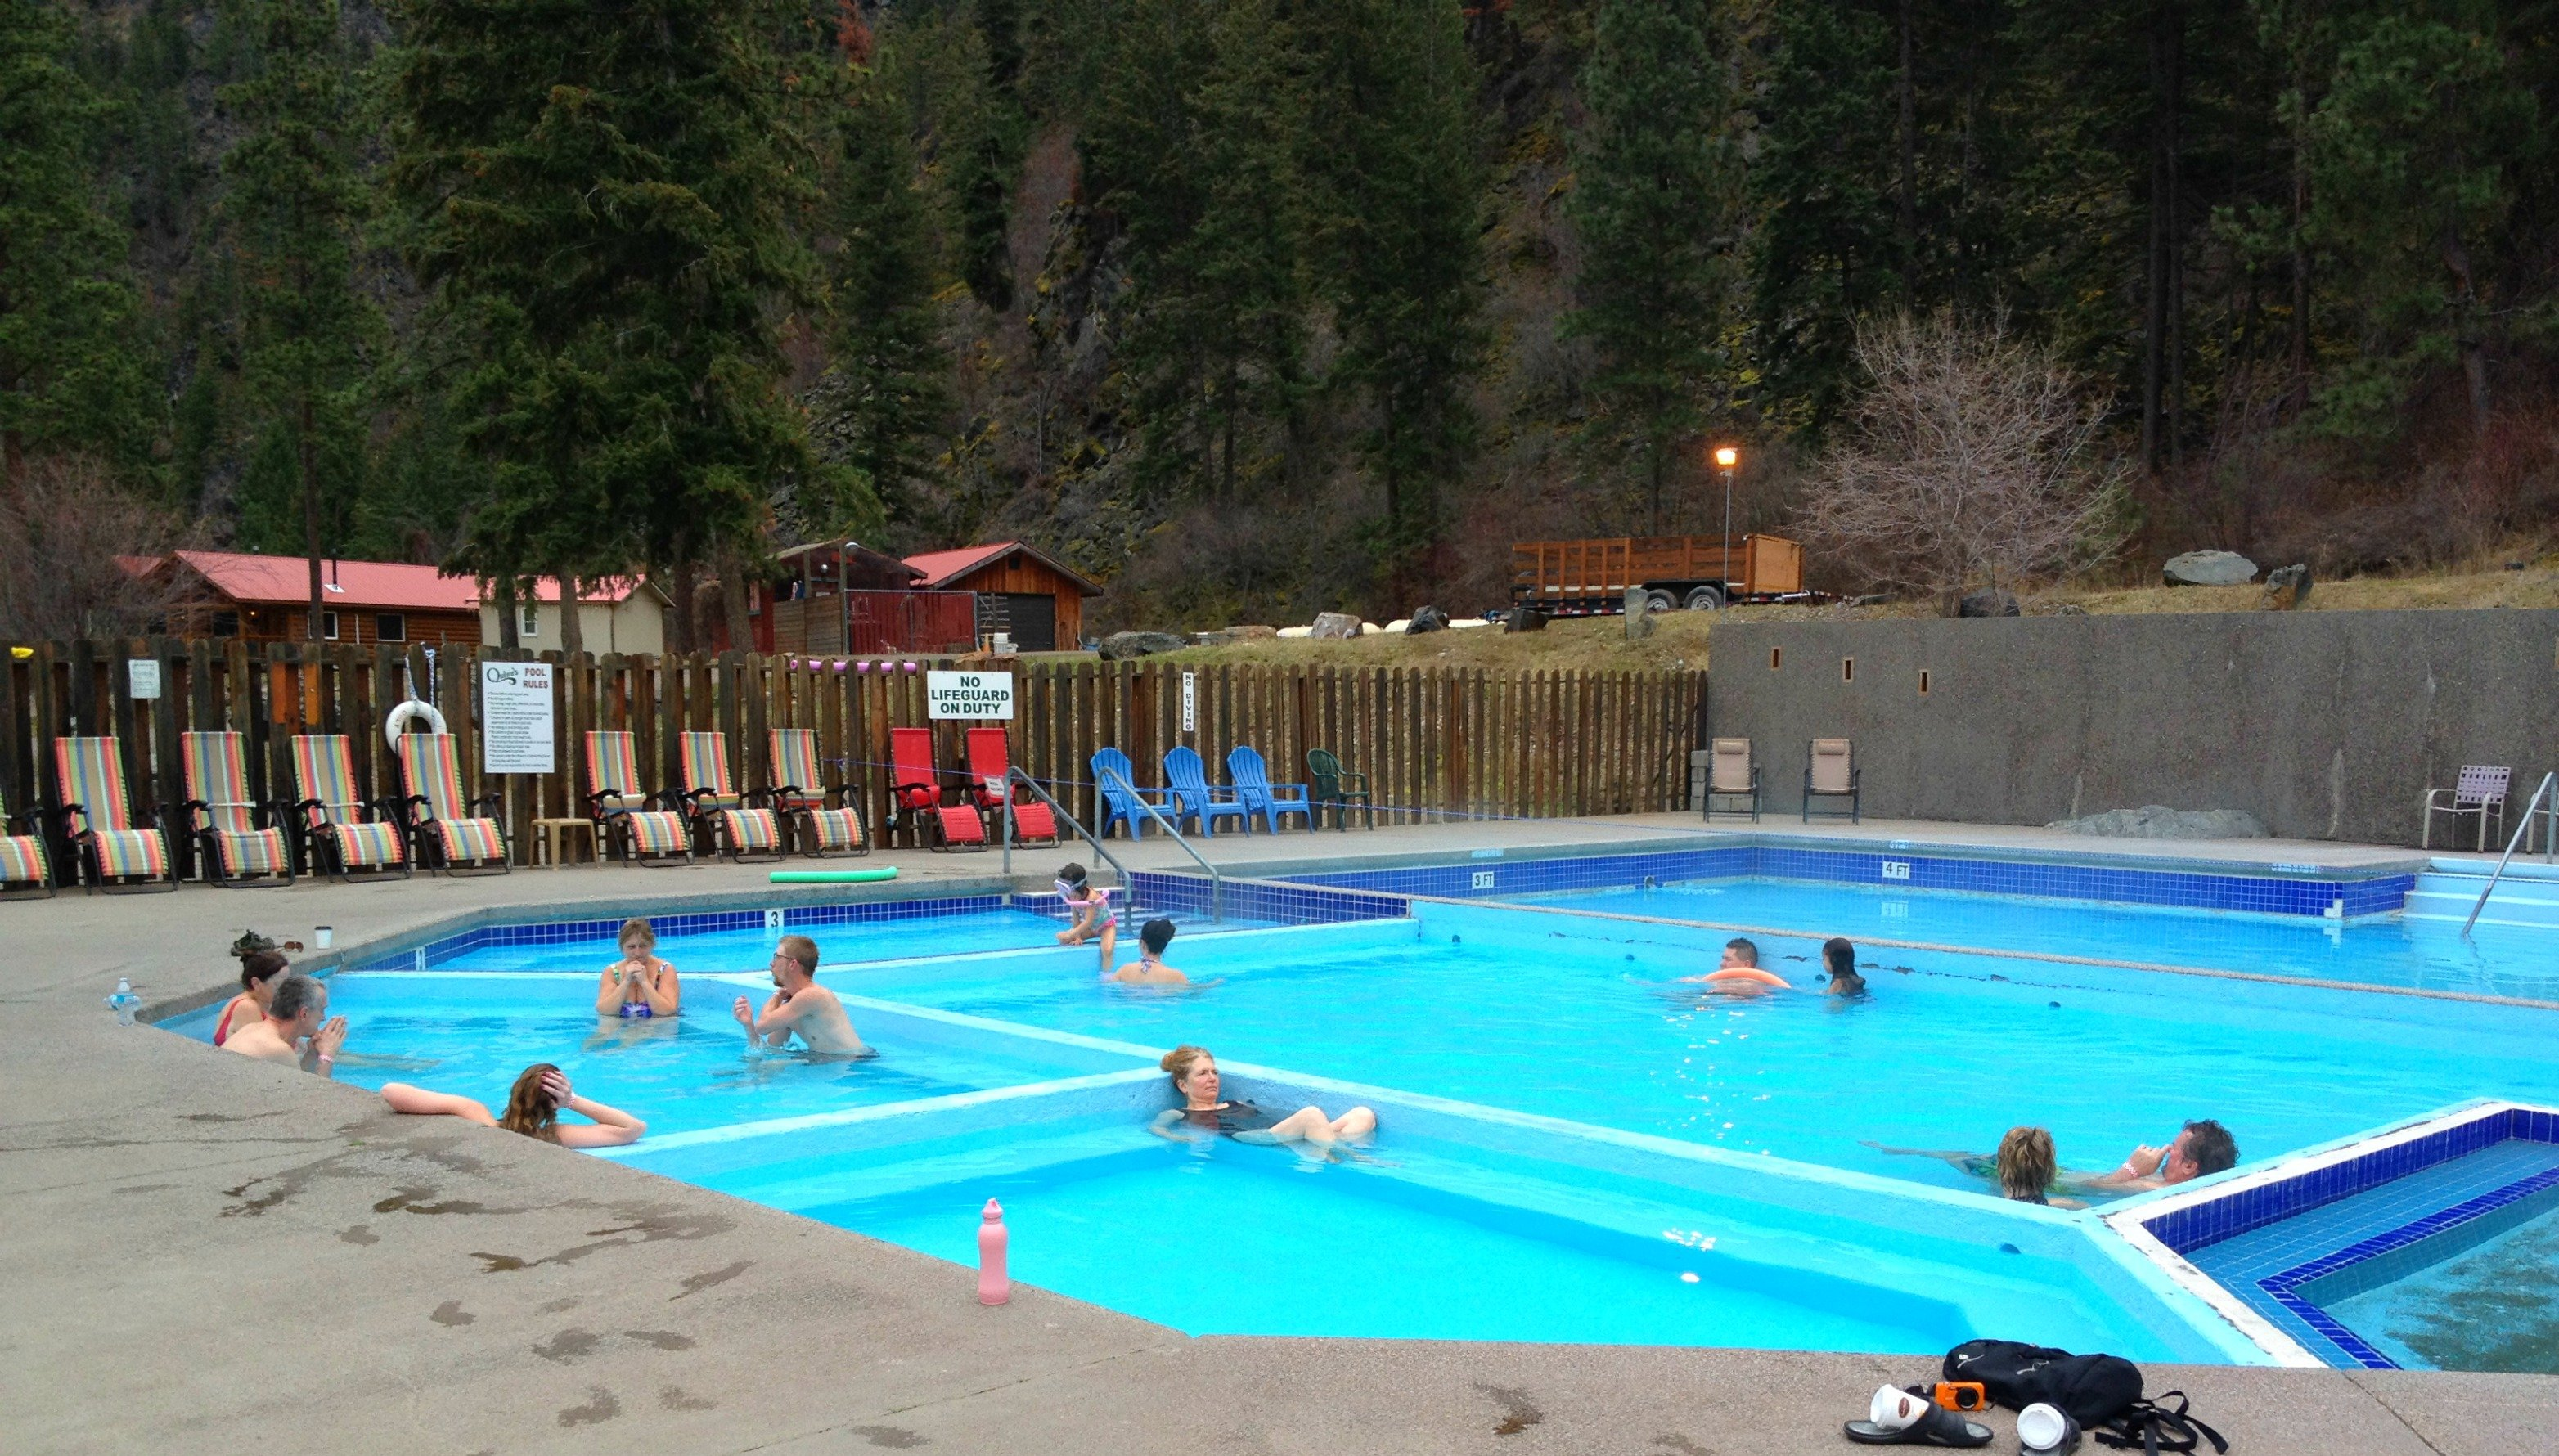 quinn hot springs montana, quinns hotsprings